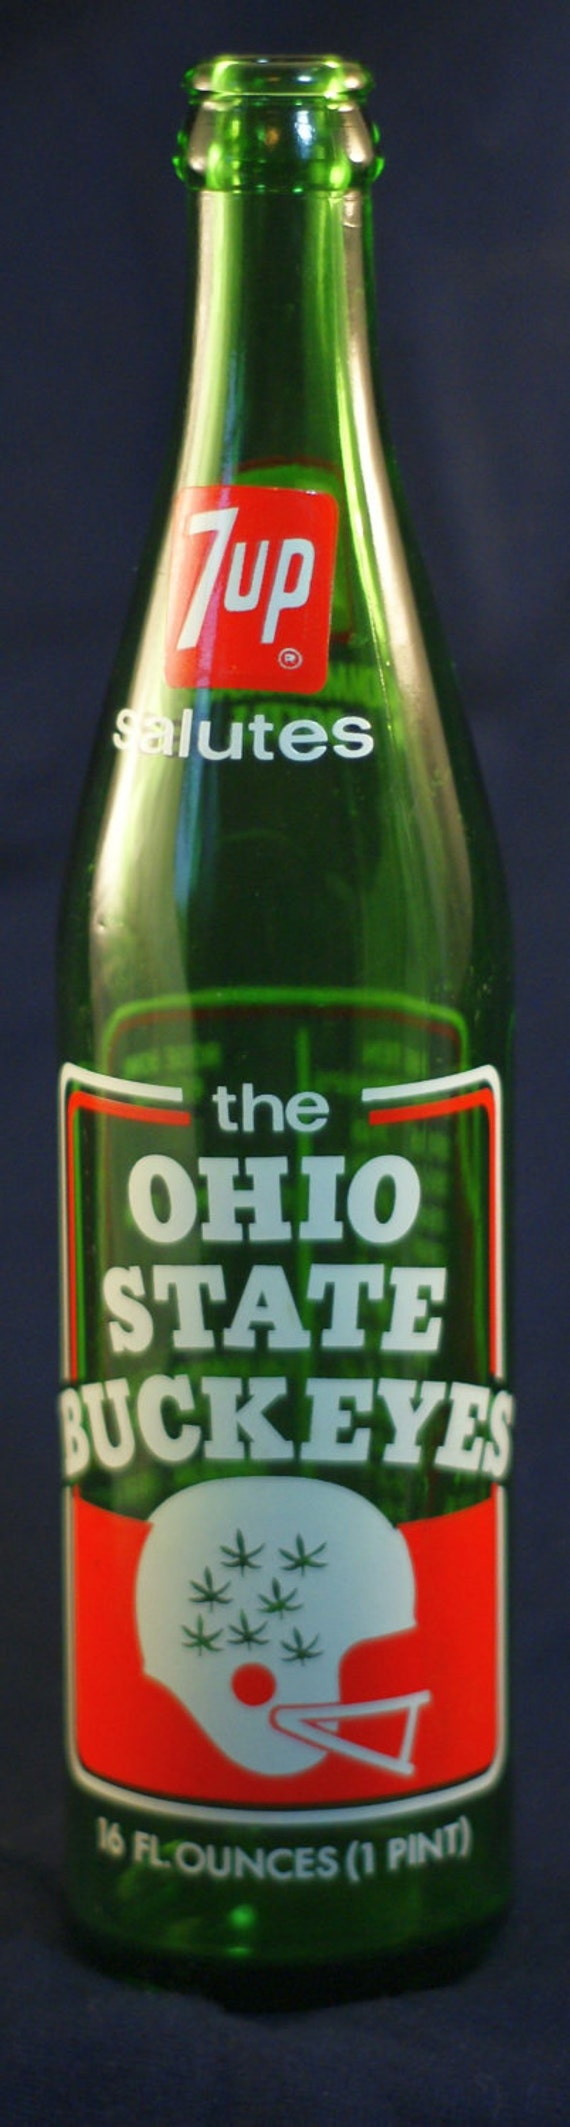 7 UP salutes the Ohio State Buckeyes Bottle.